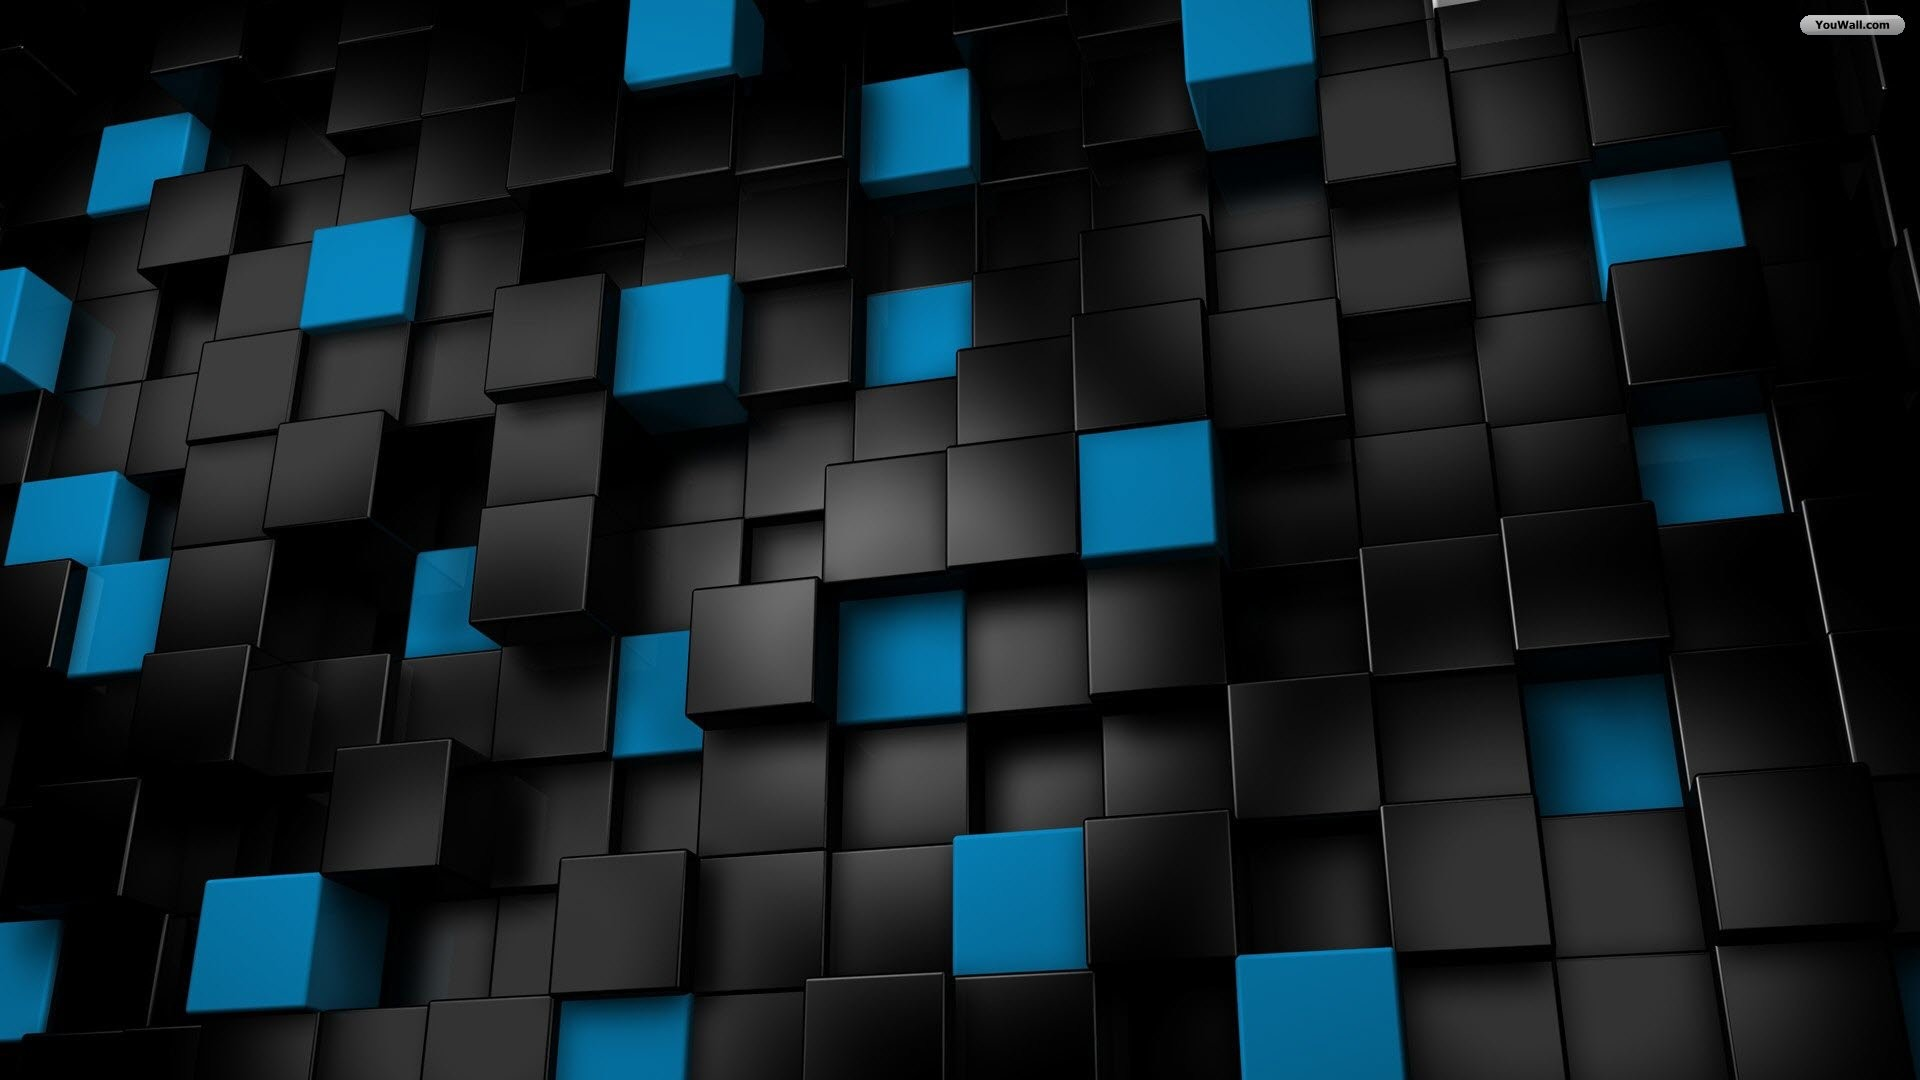 1920x1080 Download Black And Blue Cubes Wallpaper